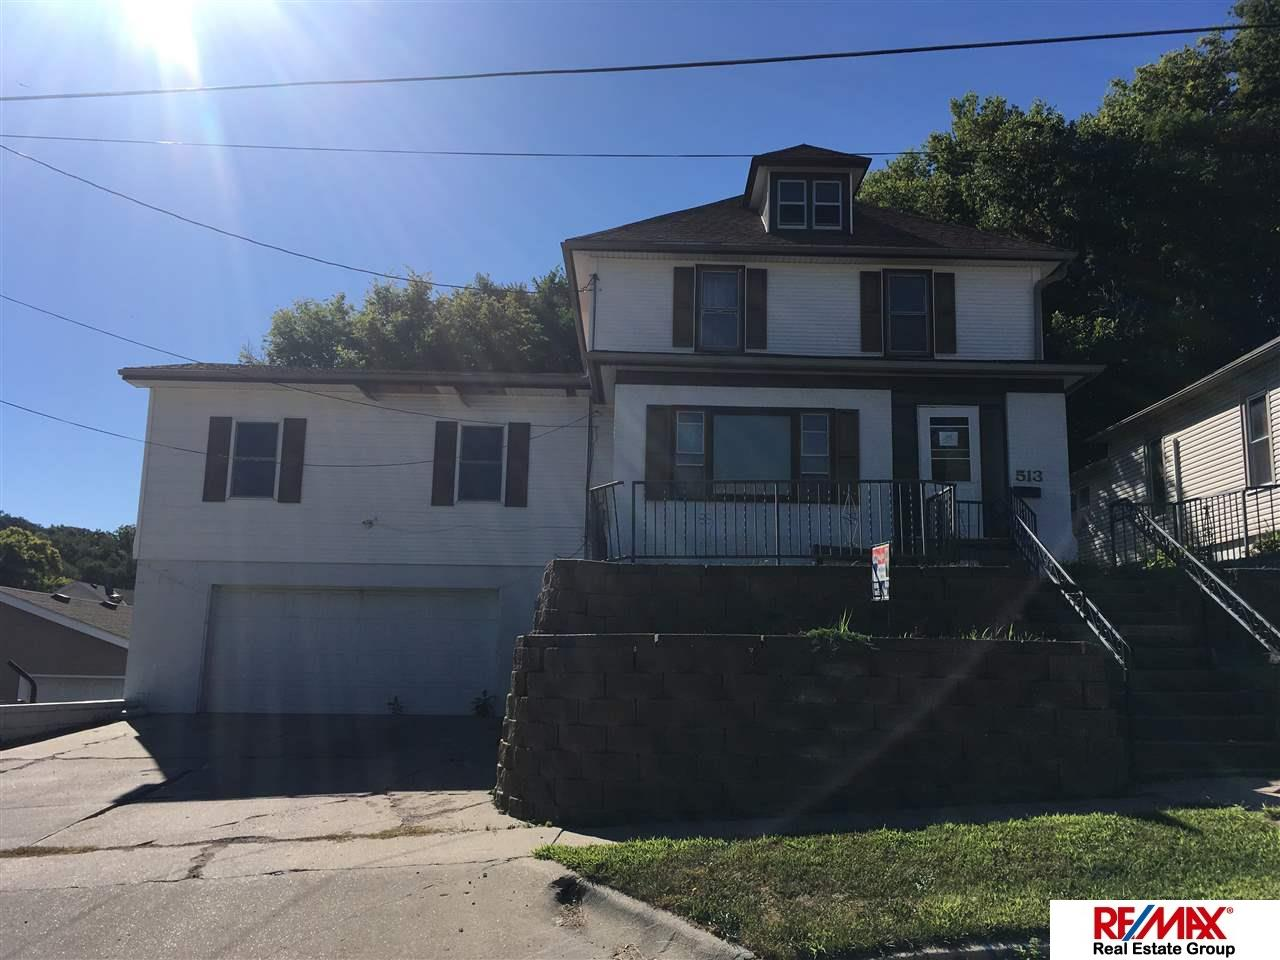 Photo of 513 Voorhis Street  Council Bluffs  IA